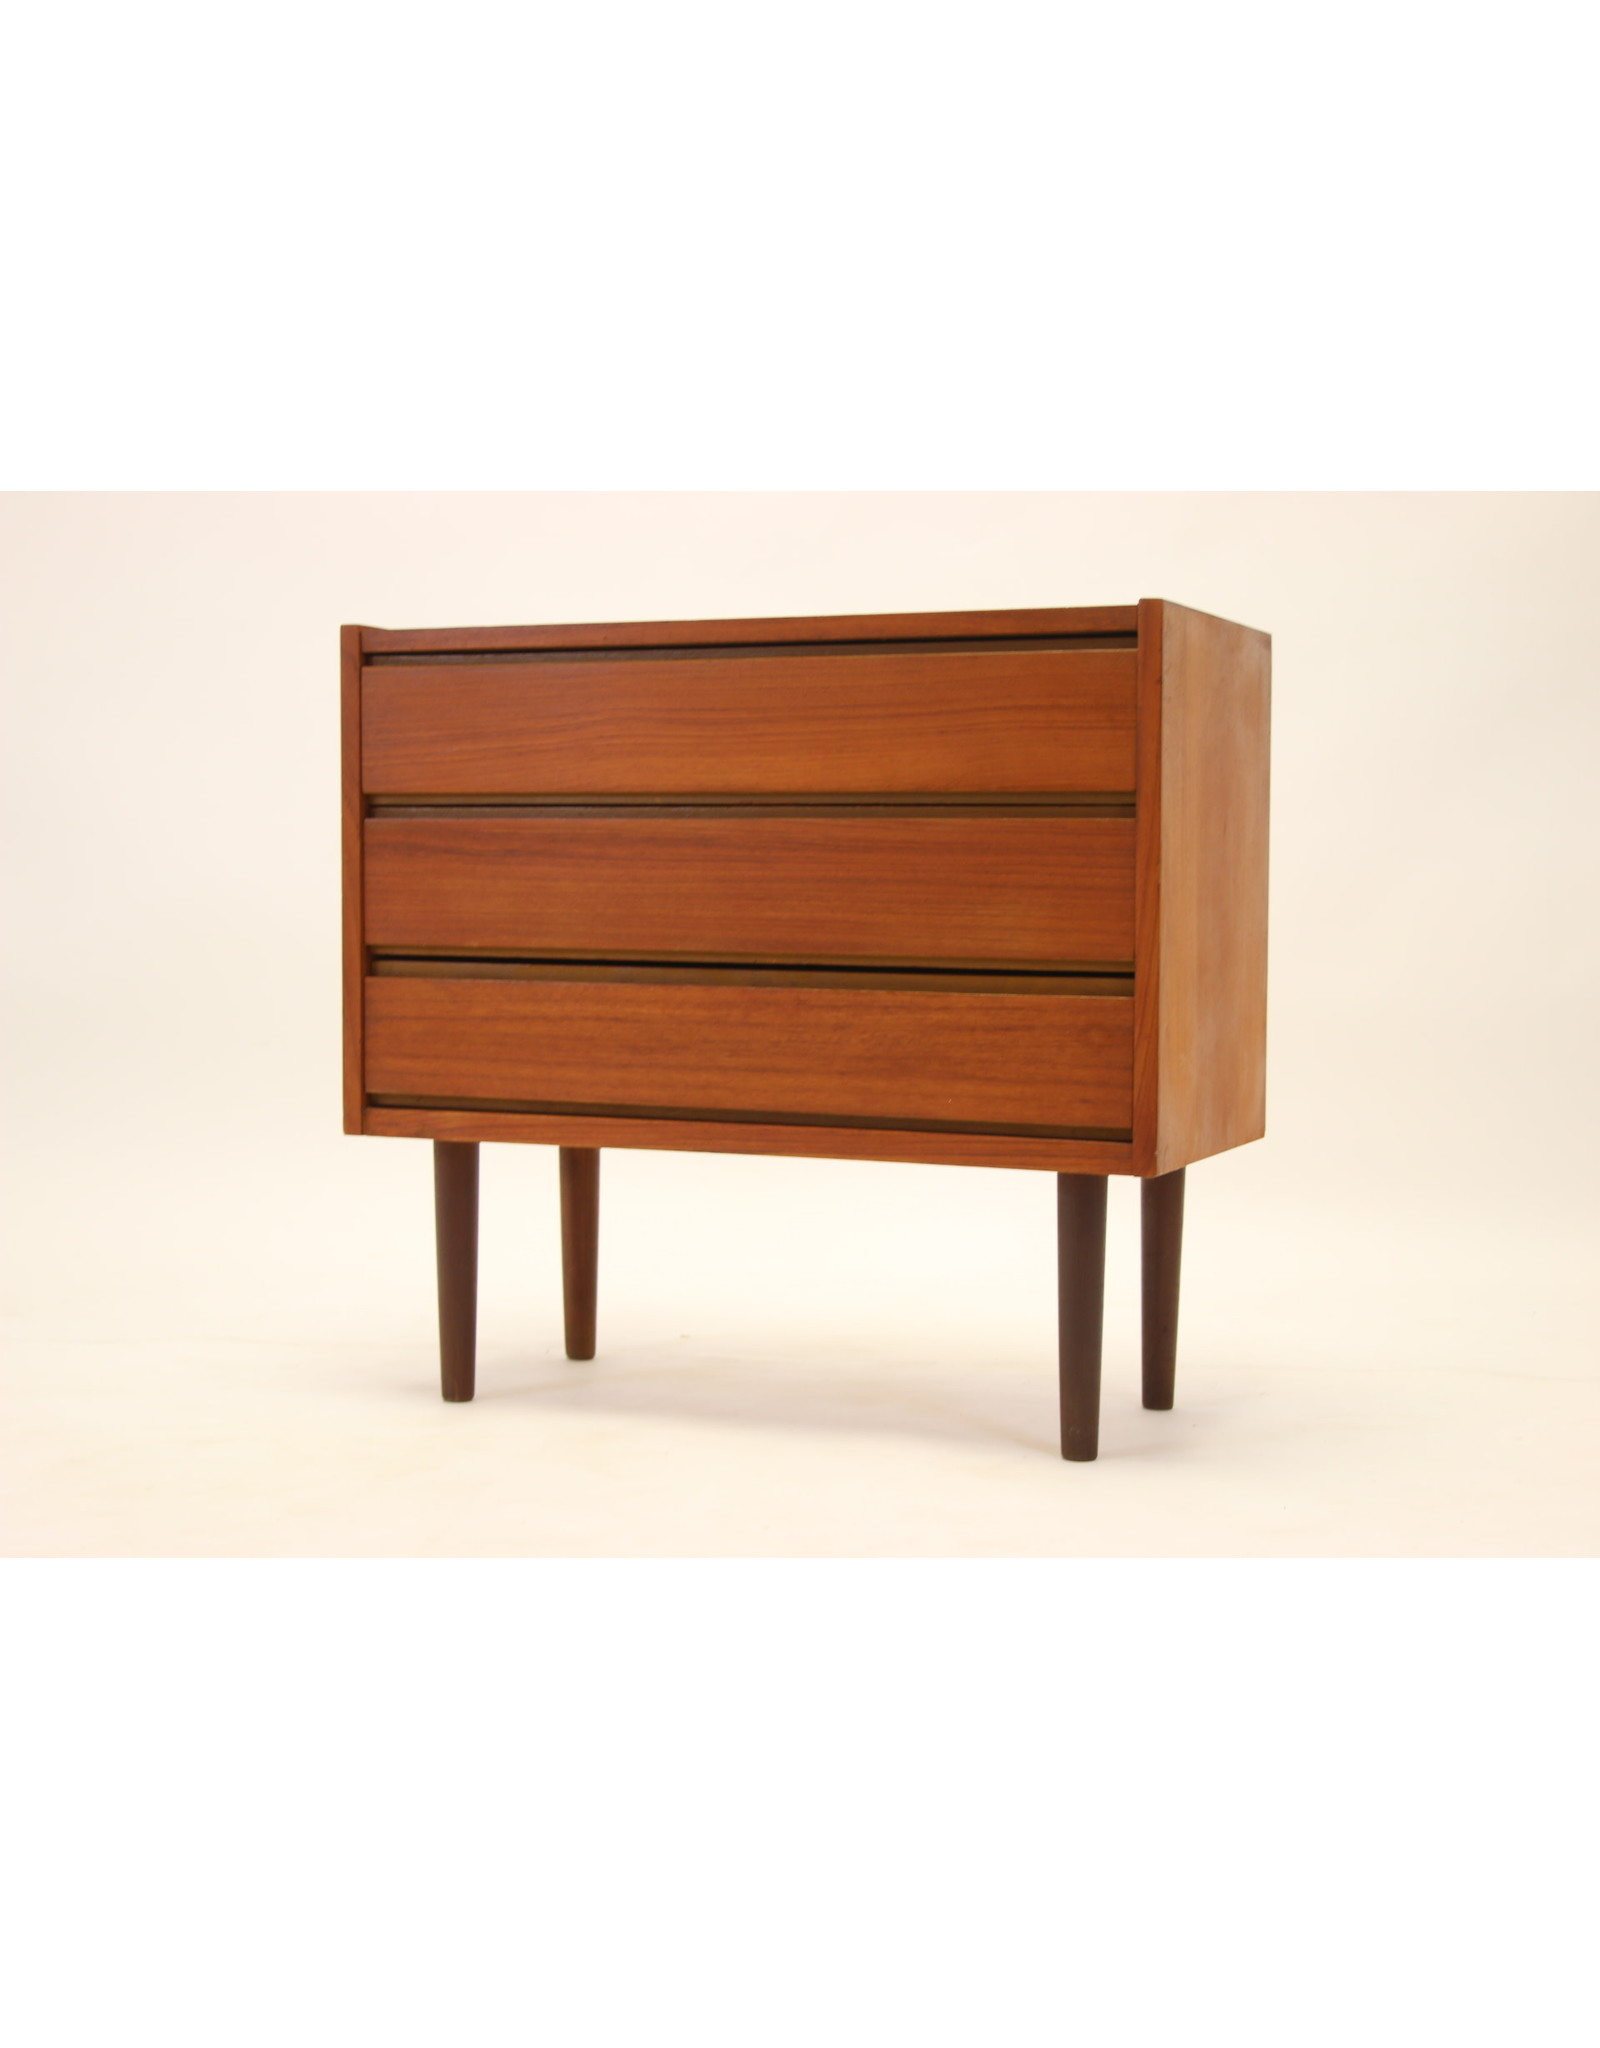 Danish Teak three drawers sideboard 1960's